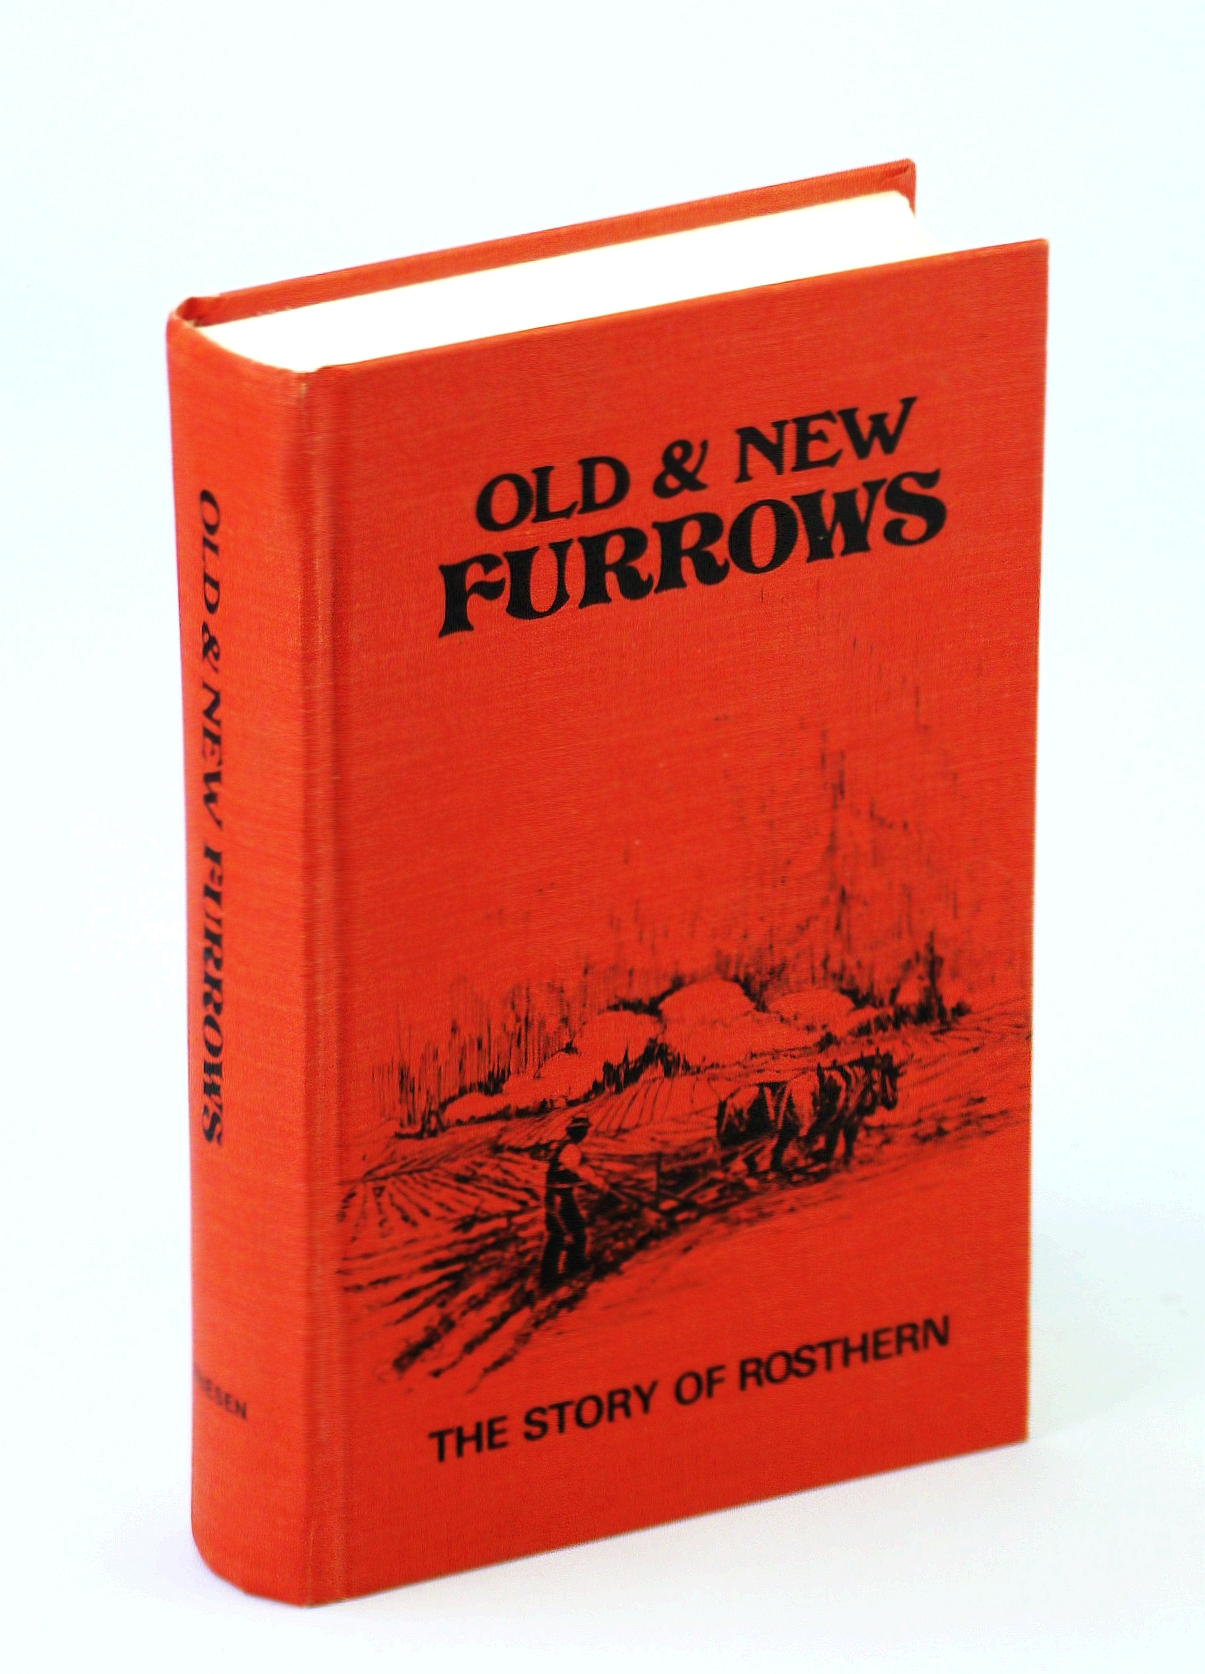 Image for Old & new furrows: The story of Rosthern